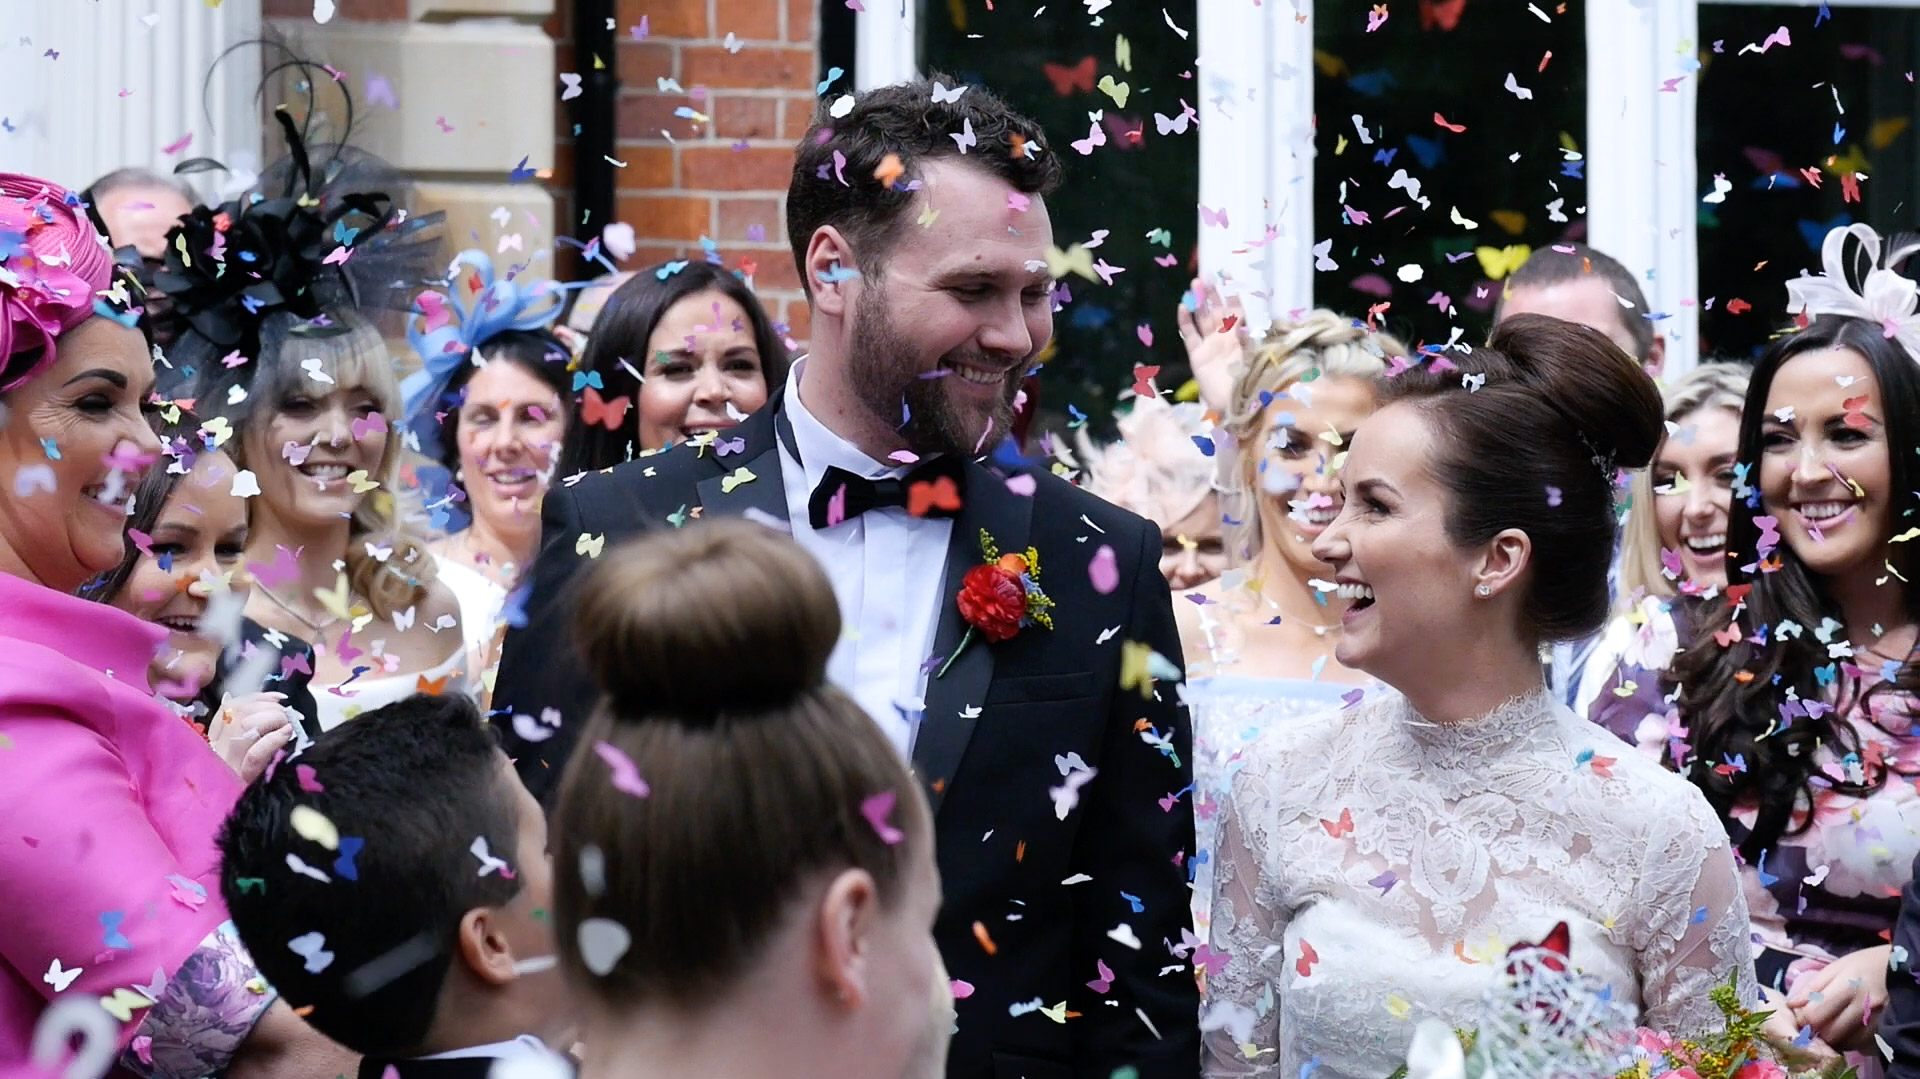 Slimming World's Jennifer JSG Sandra Ginley with husband Luke Hagan during their confetti shot.